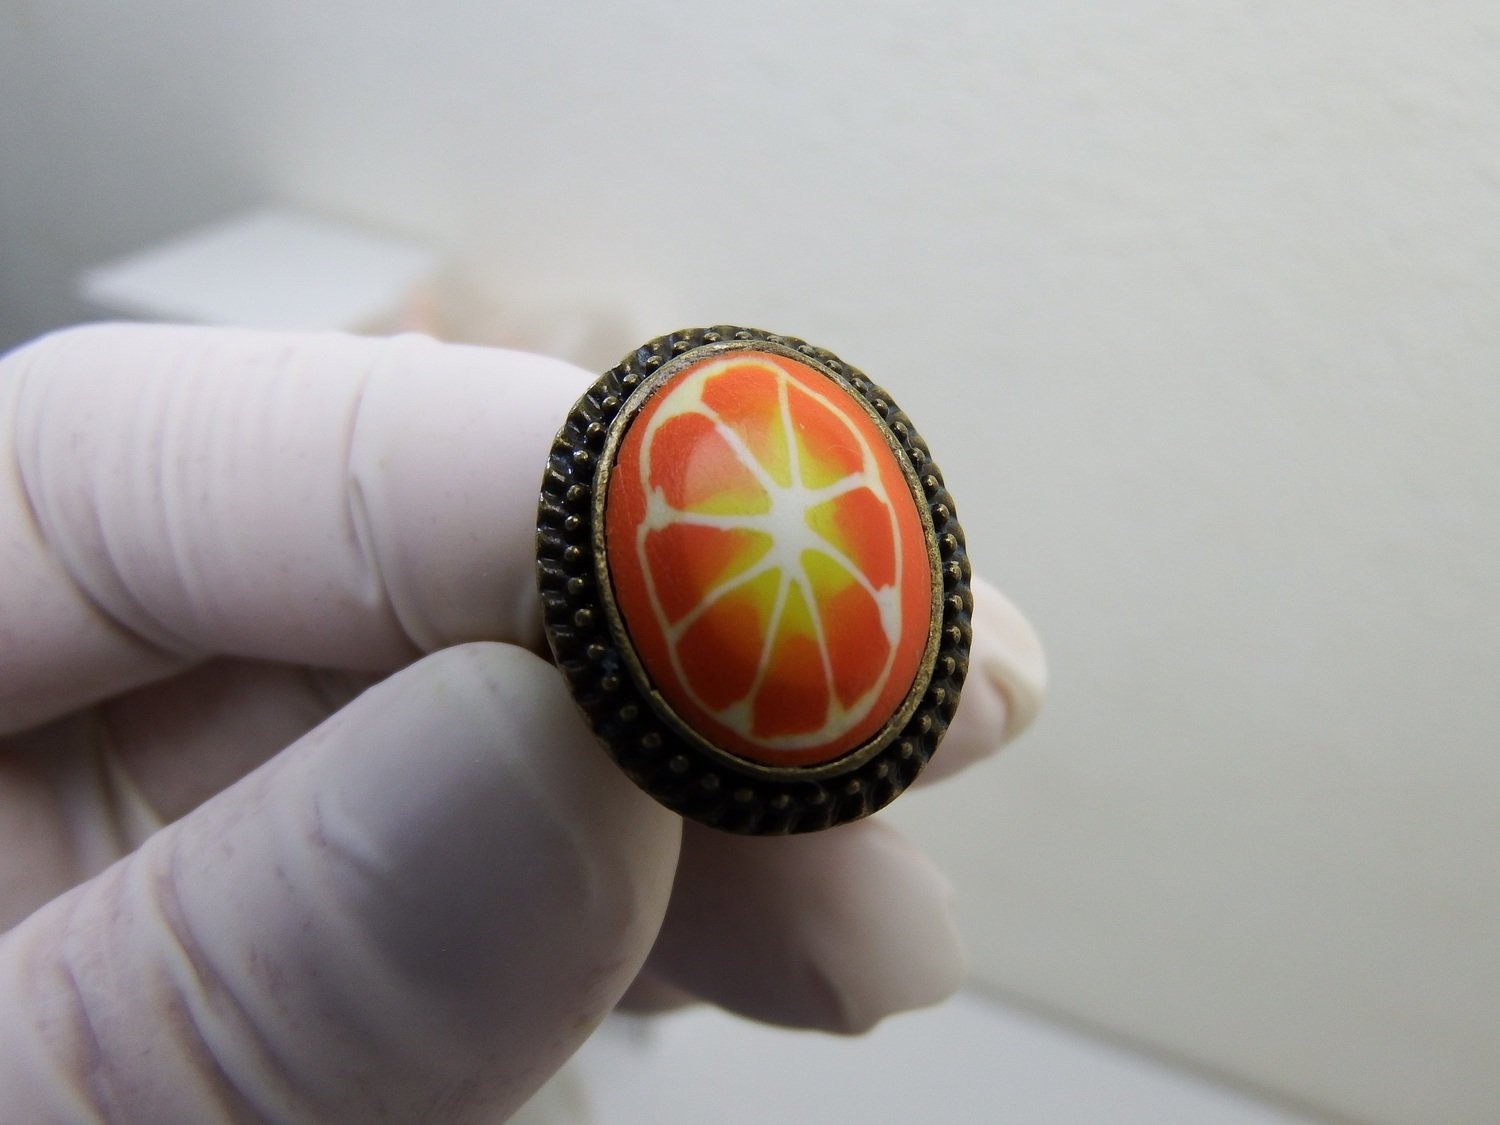 0013 - Bague - Tranche d'orange